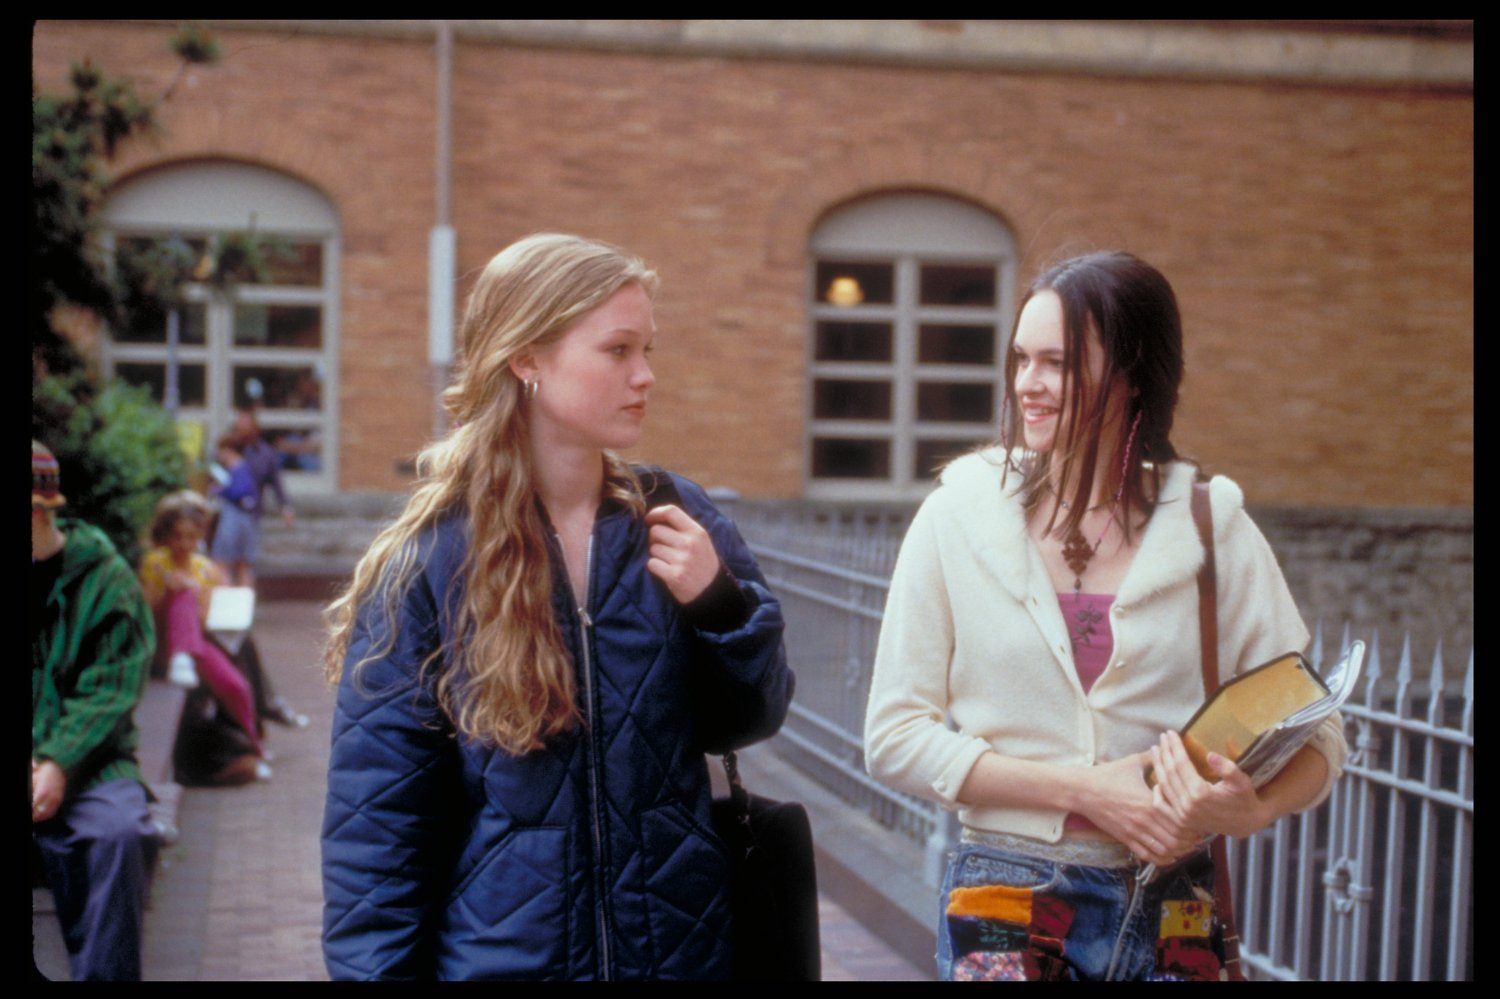 Genre Grandeur 10 Things I Hate About You 1999: 10 Things I Hate About You 1999 Full Movie Watch In HD